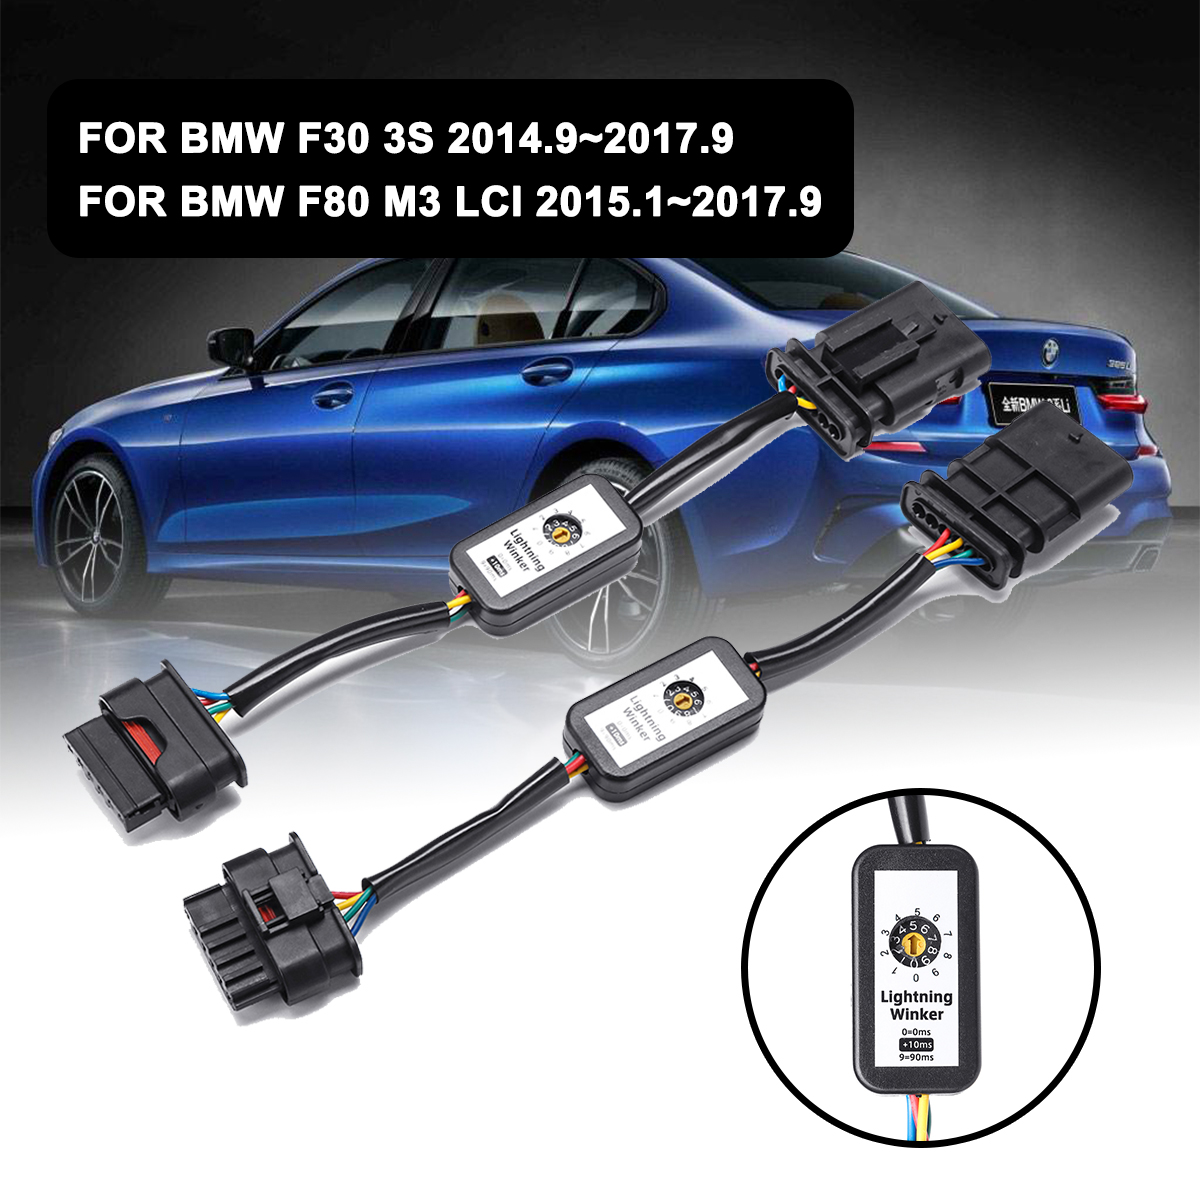 For BMW F30 3s F80 M3 LCI 1pair Dynamic Turn Signal Indicator LED Taillight Module Cable Wire Harness Left & Right Tail Light